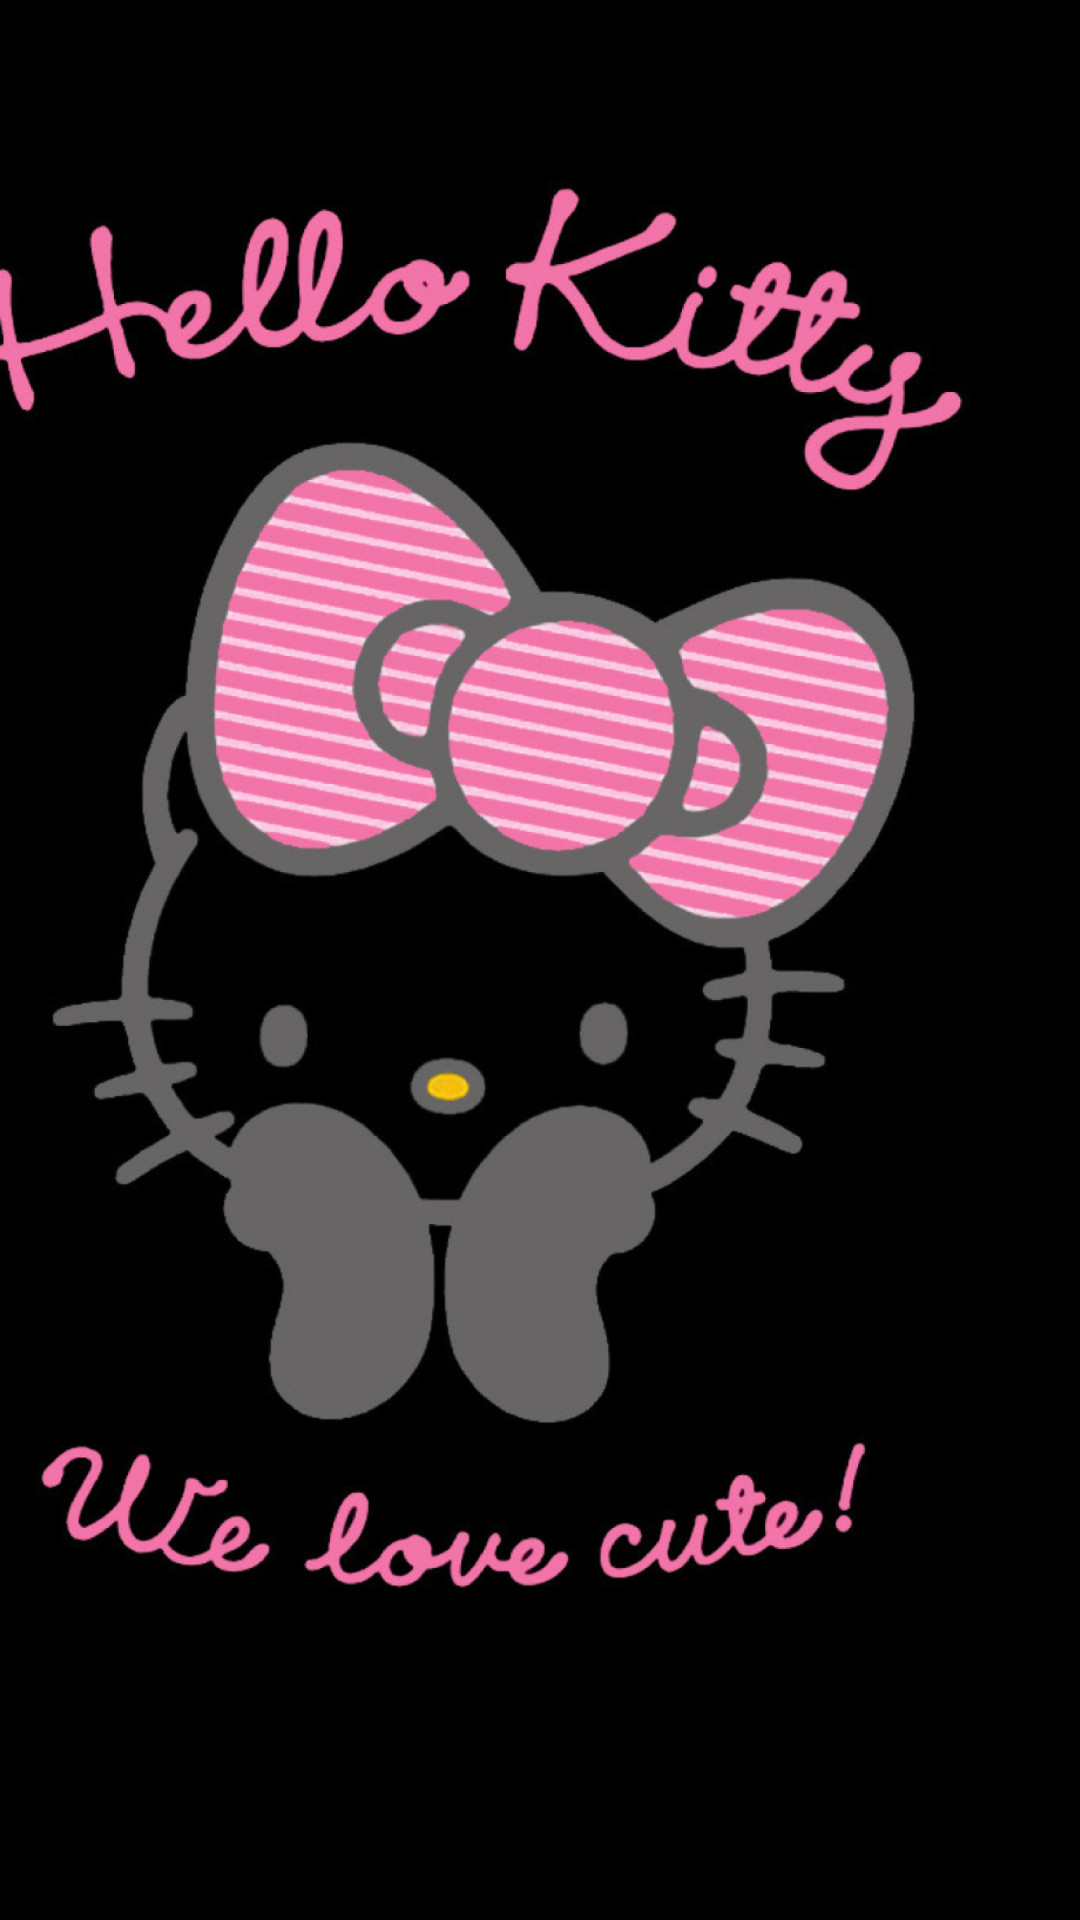 Cute Baby Girl Wallpaper For Desktop Full Screen Hello Kitty Wallpapers And Screensavers 63 Images